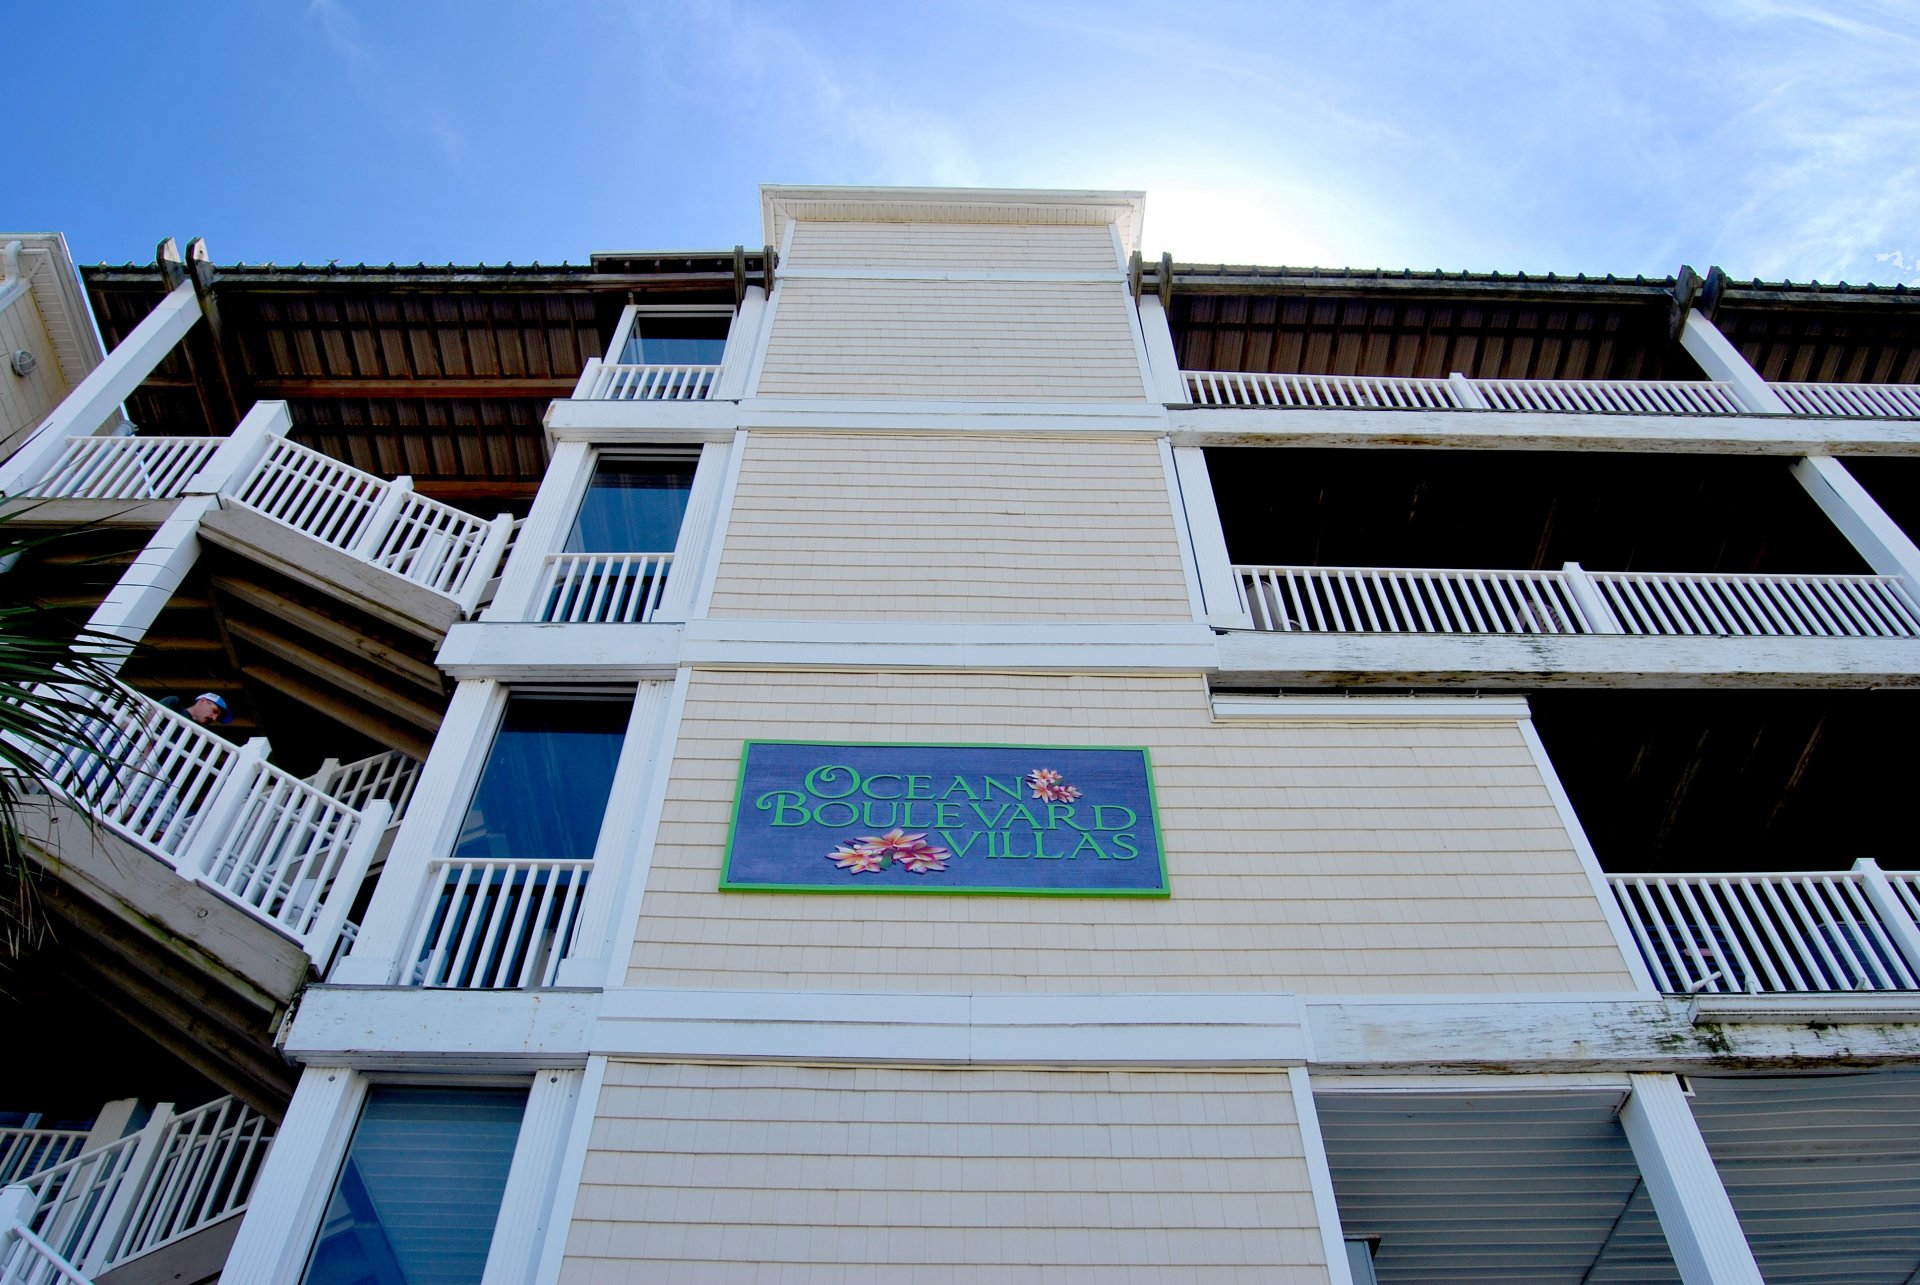 Vacation Ocean Boulevard Villas Condo Al Photos Click On Photo To Enlarge Unit Shown Are Example Only